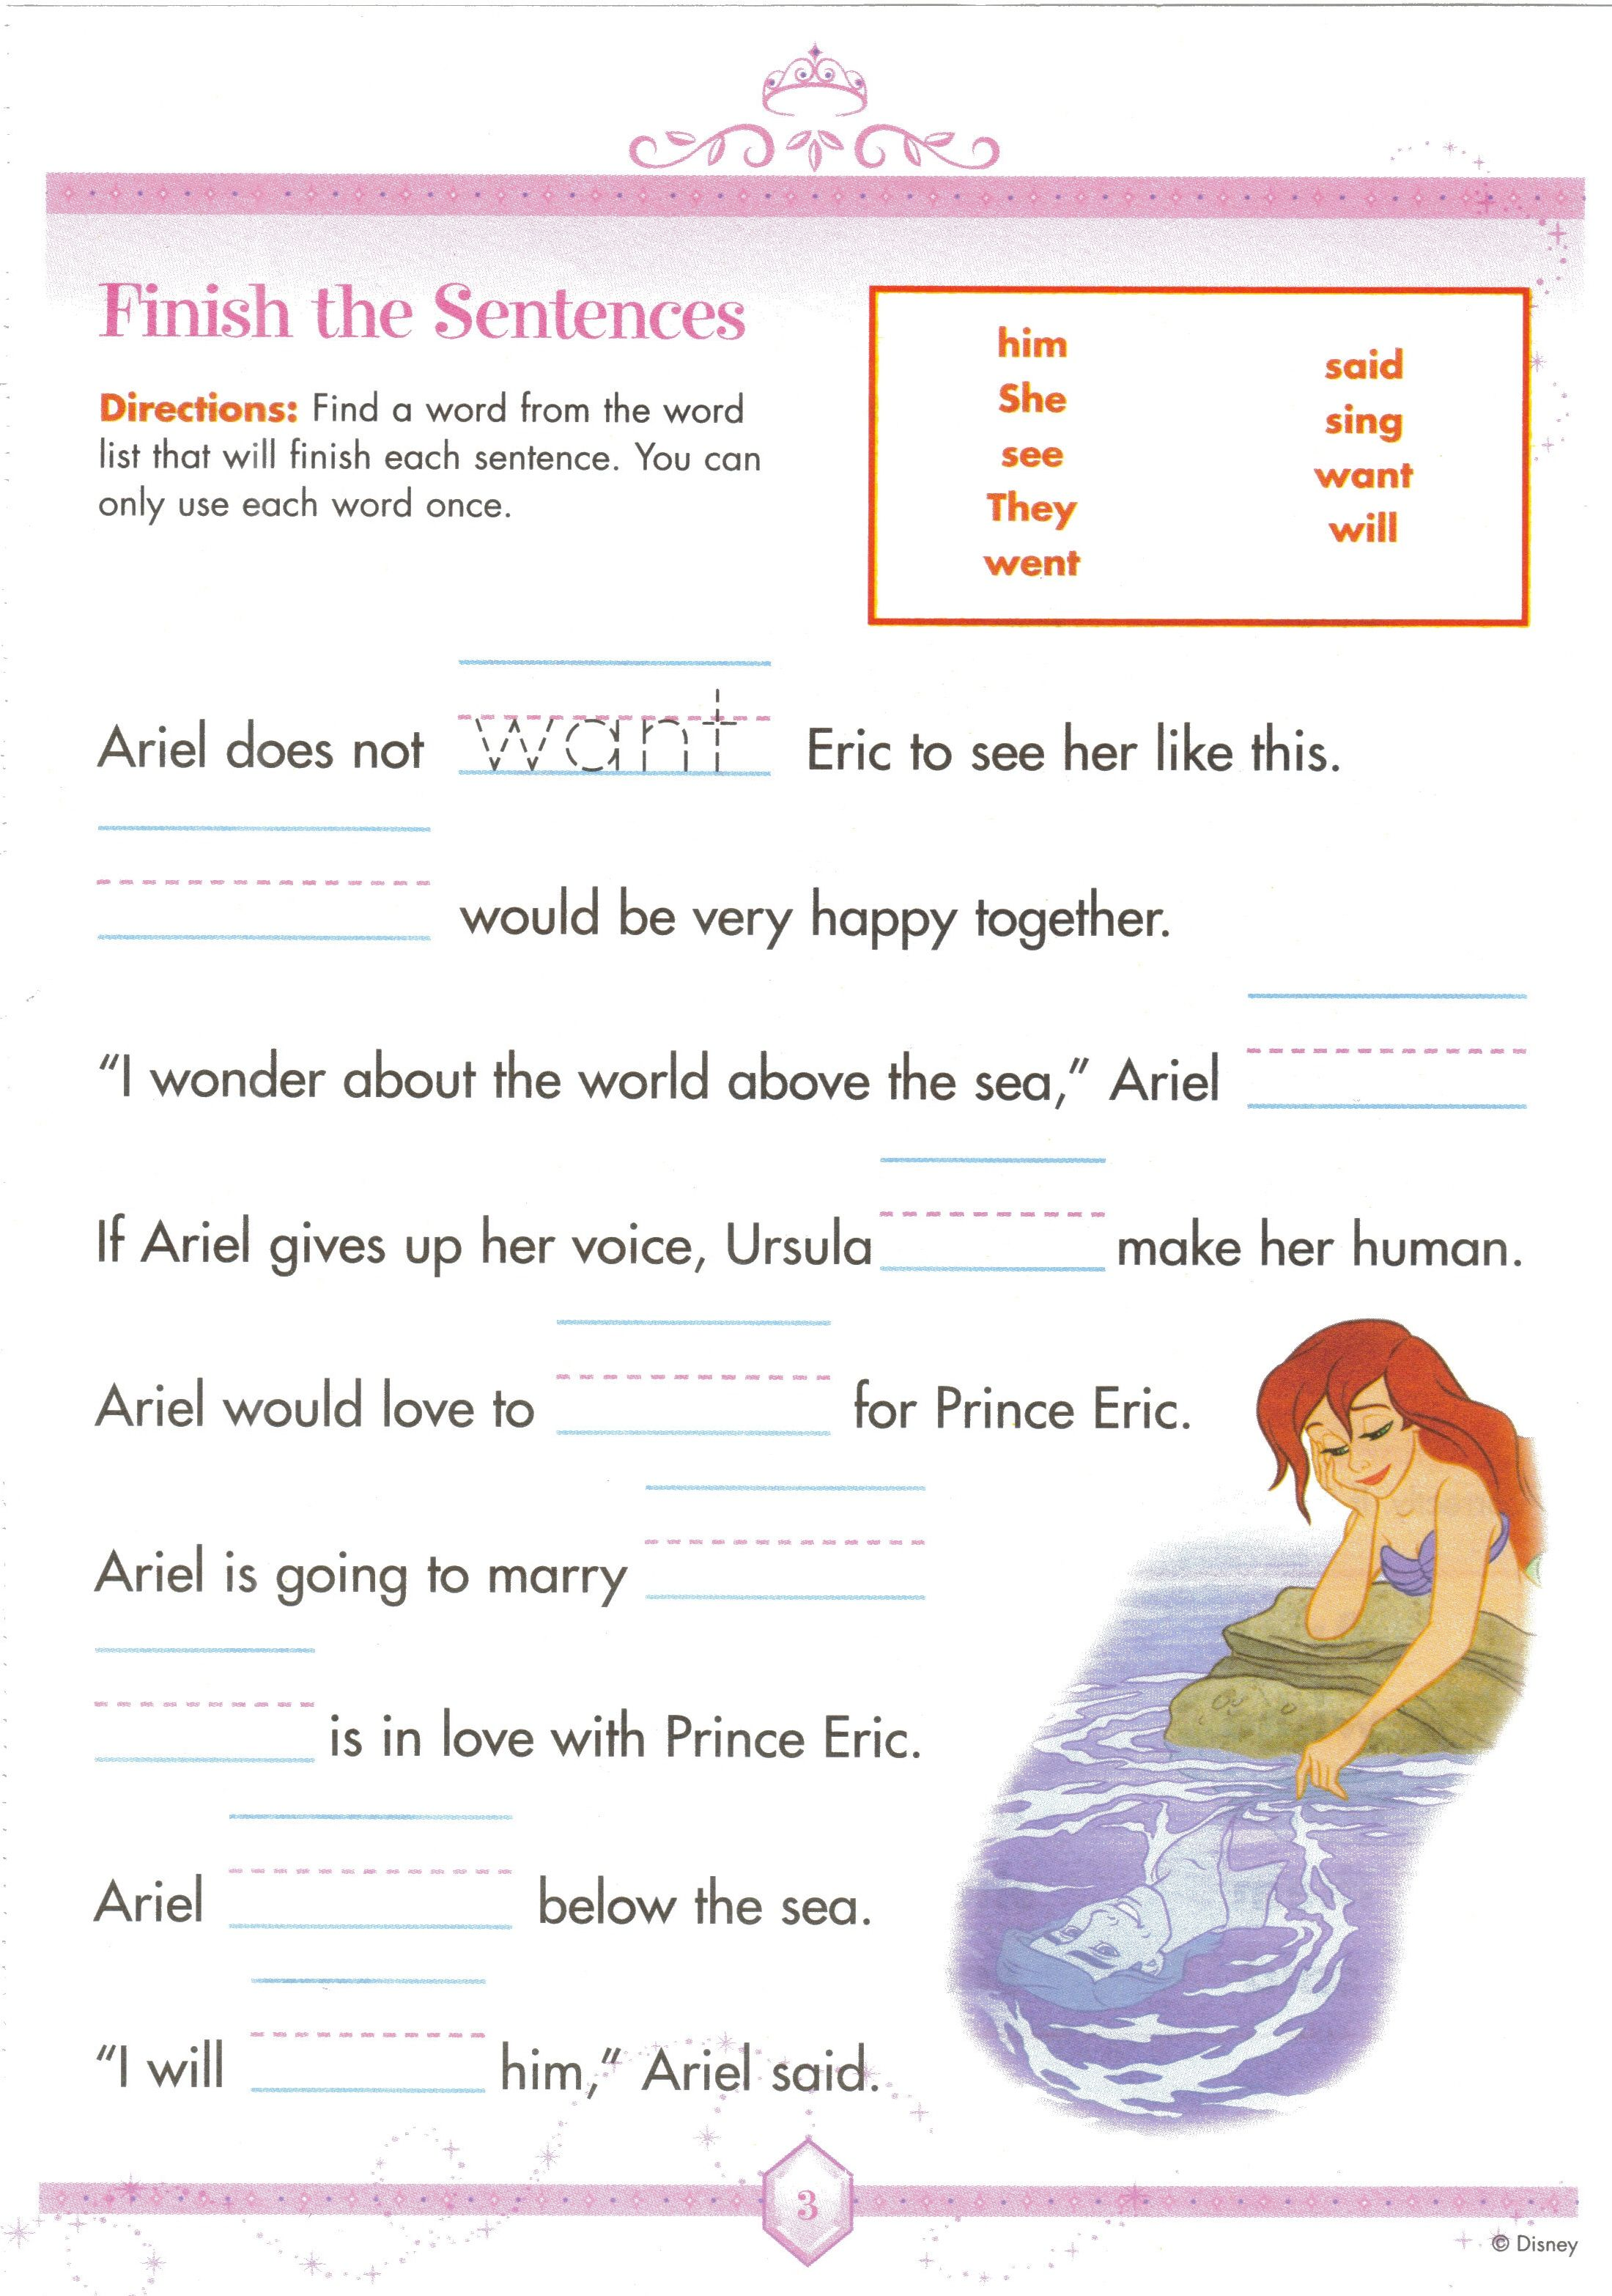 Weirdmailus  Pretty  Images About Worksheets On Pinterest  Fun Facts For Kids  With Luxury  Images About Worksheets On Pinterest  Fun Facts For Kids Earth Day Worksheets And Jungles With Archaic Ordering Fractions And Decimals From Least To Greatest Worksheet Also Diagraph Worksheets In Addition Phonics Worksheets St Grade And Cursive Worksheets For Adults As Well As Map Skills Worksheets Th Grade Additionally Homonym Worksheet From Pinterestcom With Weirdmailus  Luxury  Images About Worksheets On Pinterest  Fun Facts For Kids  With Archaic  Images About Worksheets On Pinterest  Fun Facts For Kids Earth Day Worksheets And Jungles And Pretty Ordering Fractions And Decimals From Least To Greatest Worksheet Also Diagraph Worksheets In Addition Phonics Worksheets St Grade From Pinterestcom